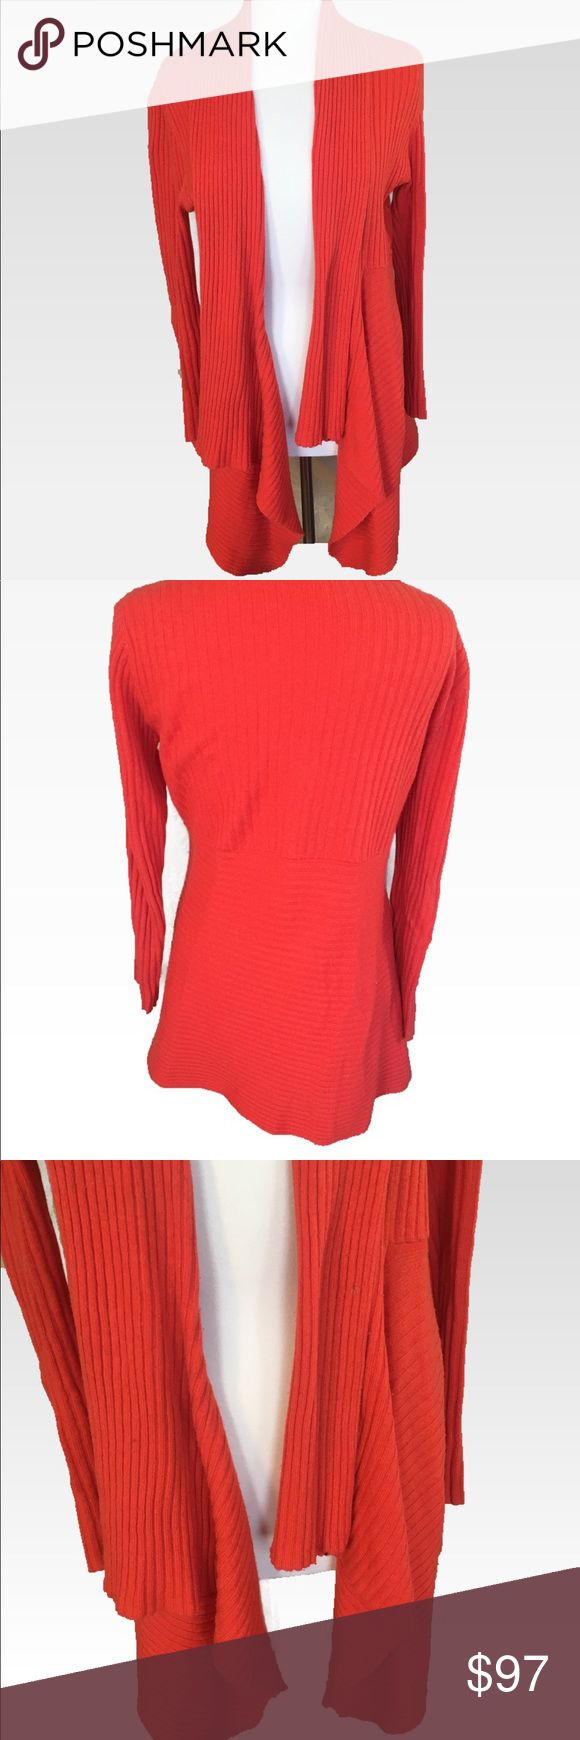 Luxurious Neiman Marcus Orange Cashmere CardiganXL Luxurious Neiman Marcus Orange Cashmere Cardigan! This is the Ferrari of cashmere. Unlike cheap knockoffs, the quality of this sweater is in the cashmere and the cut. This hangs perfectly, creating a flattering silhouette. And the color is so perfect for fall! Size XL. Paid $425 for this brand new. GUC. There is some pilling in various spots which is typical of pure cashmere. The price reflects. This is a steal! Grab it before it's gone…